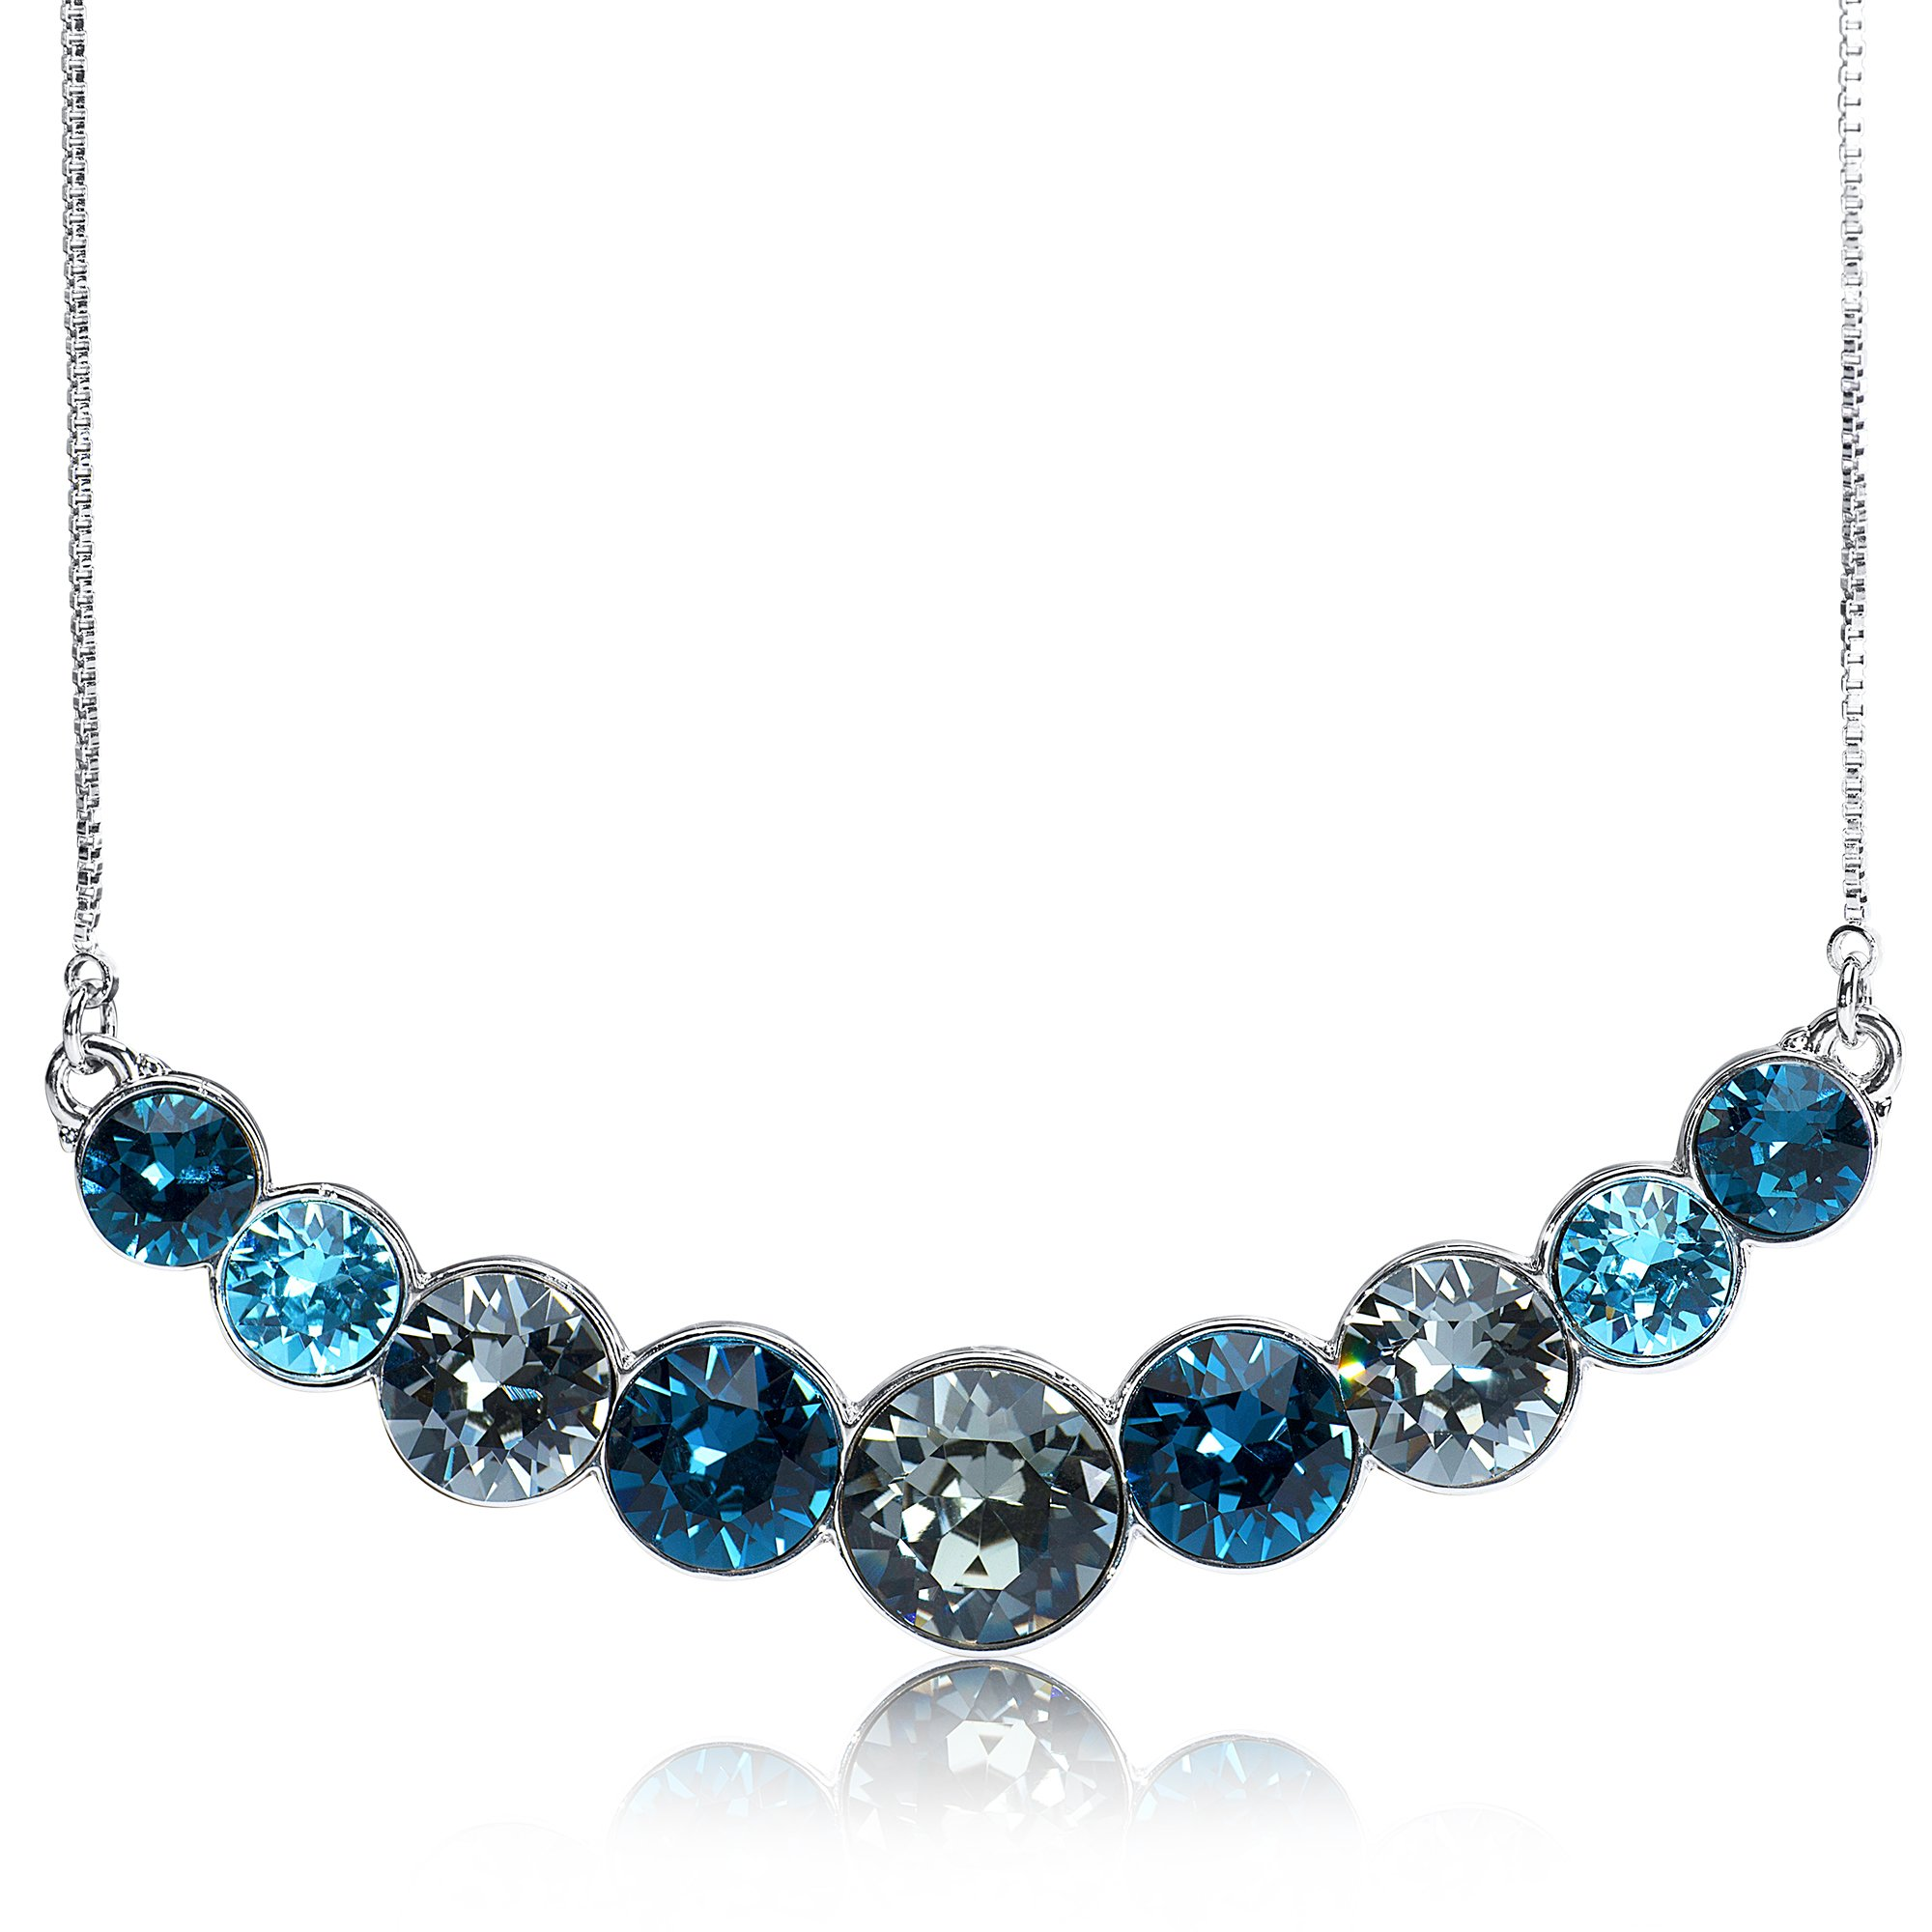 UPSERA Necklace for Women Curved Bar Pendant Made with Swarovski Crystals with Gift Pouch